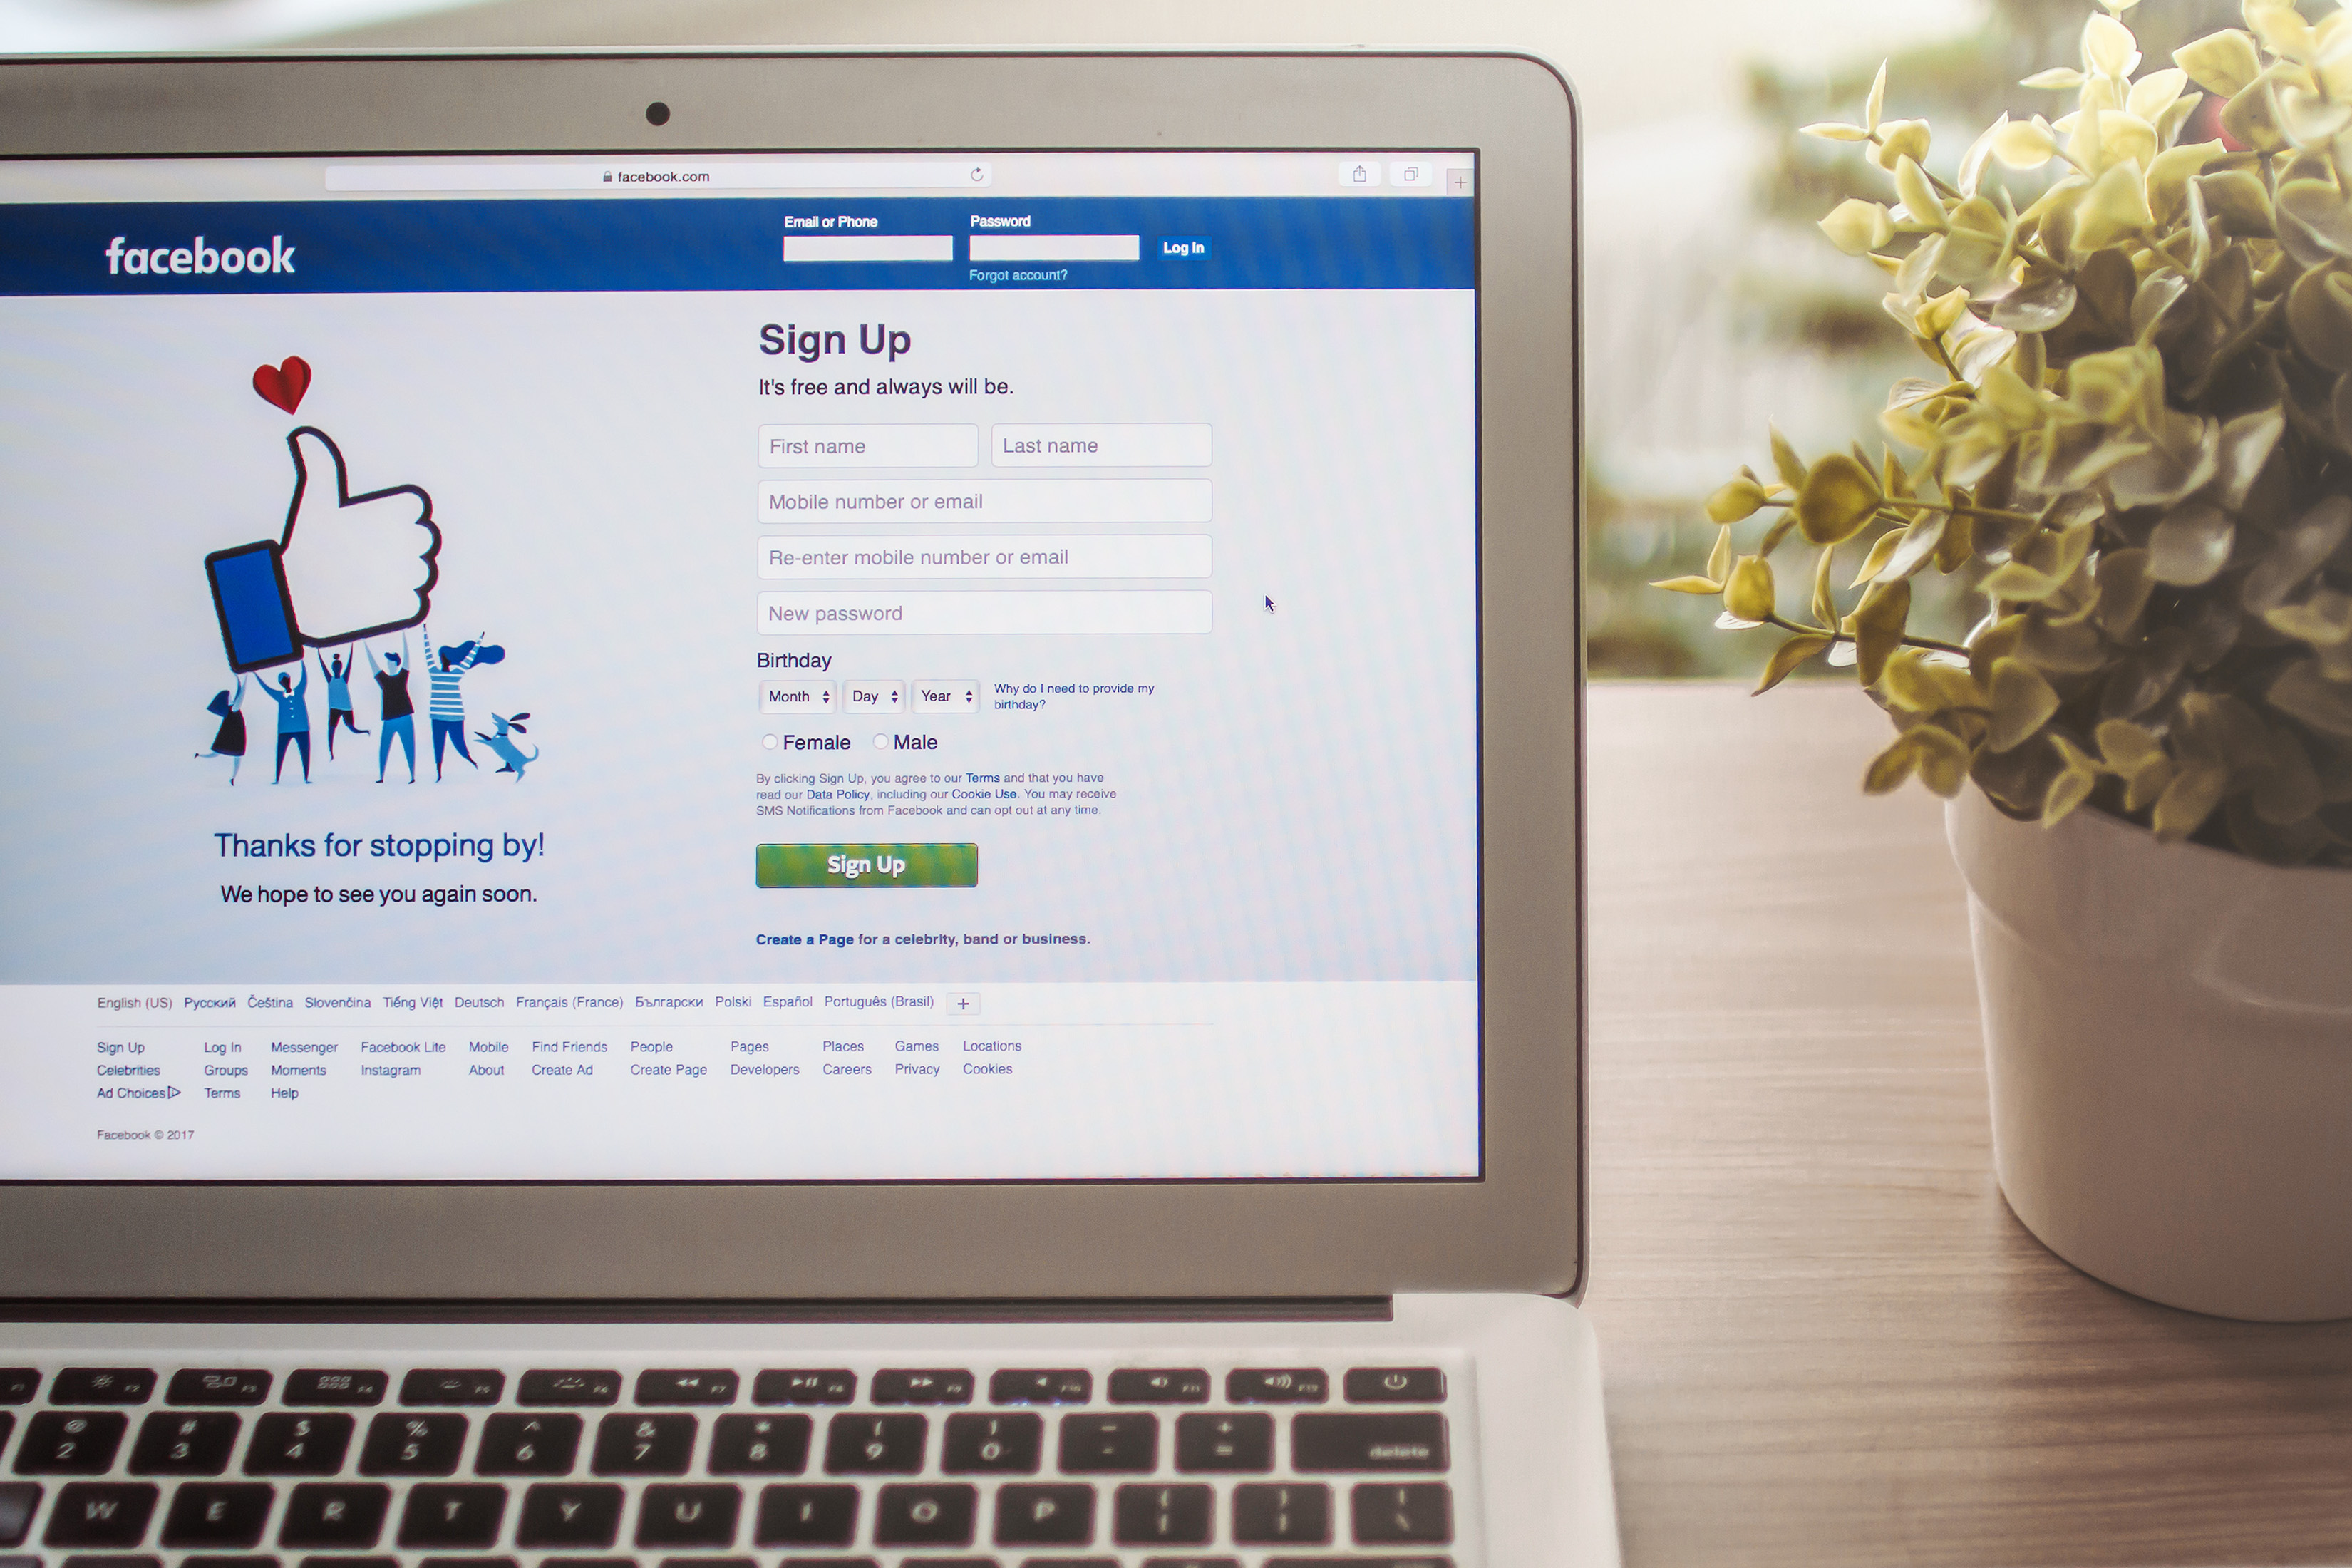 Why I deleted my Facebook profile